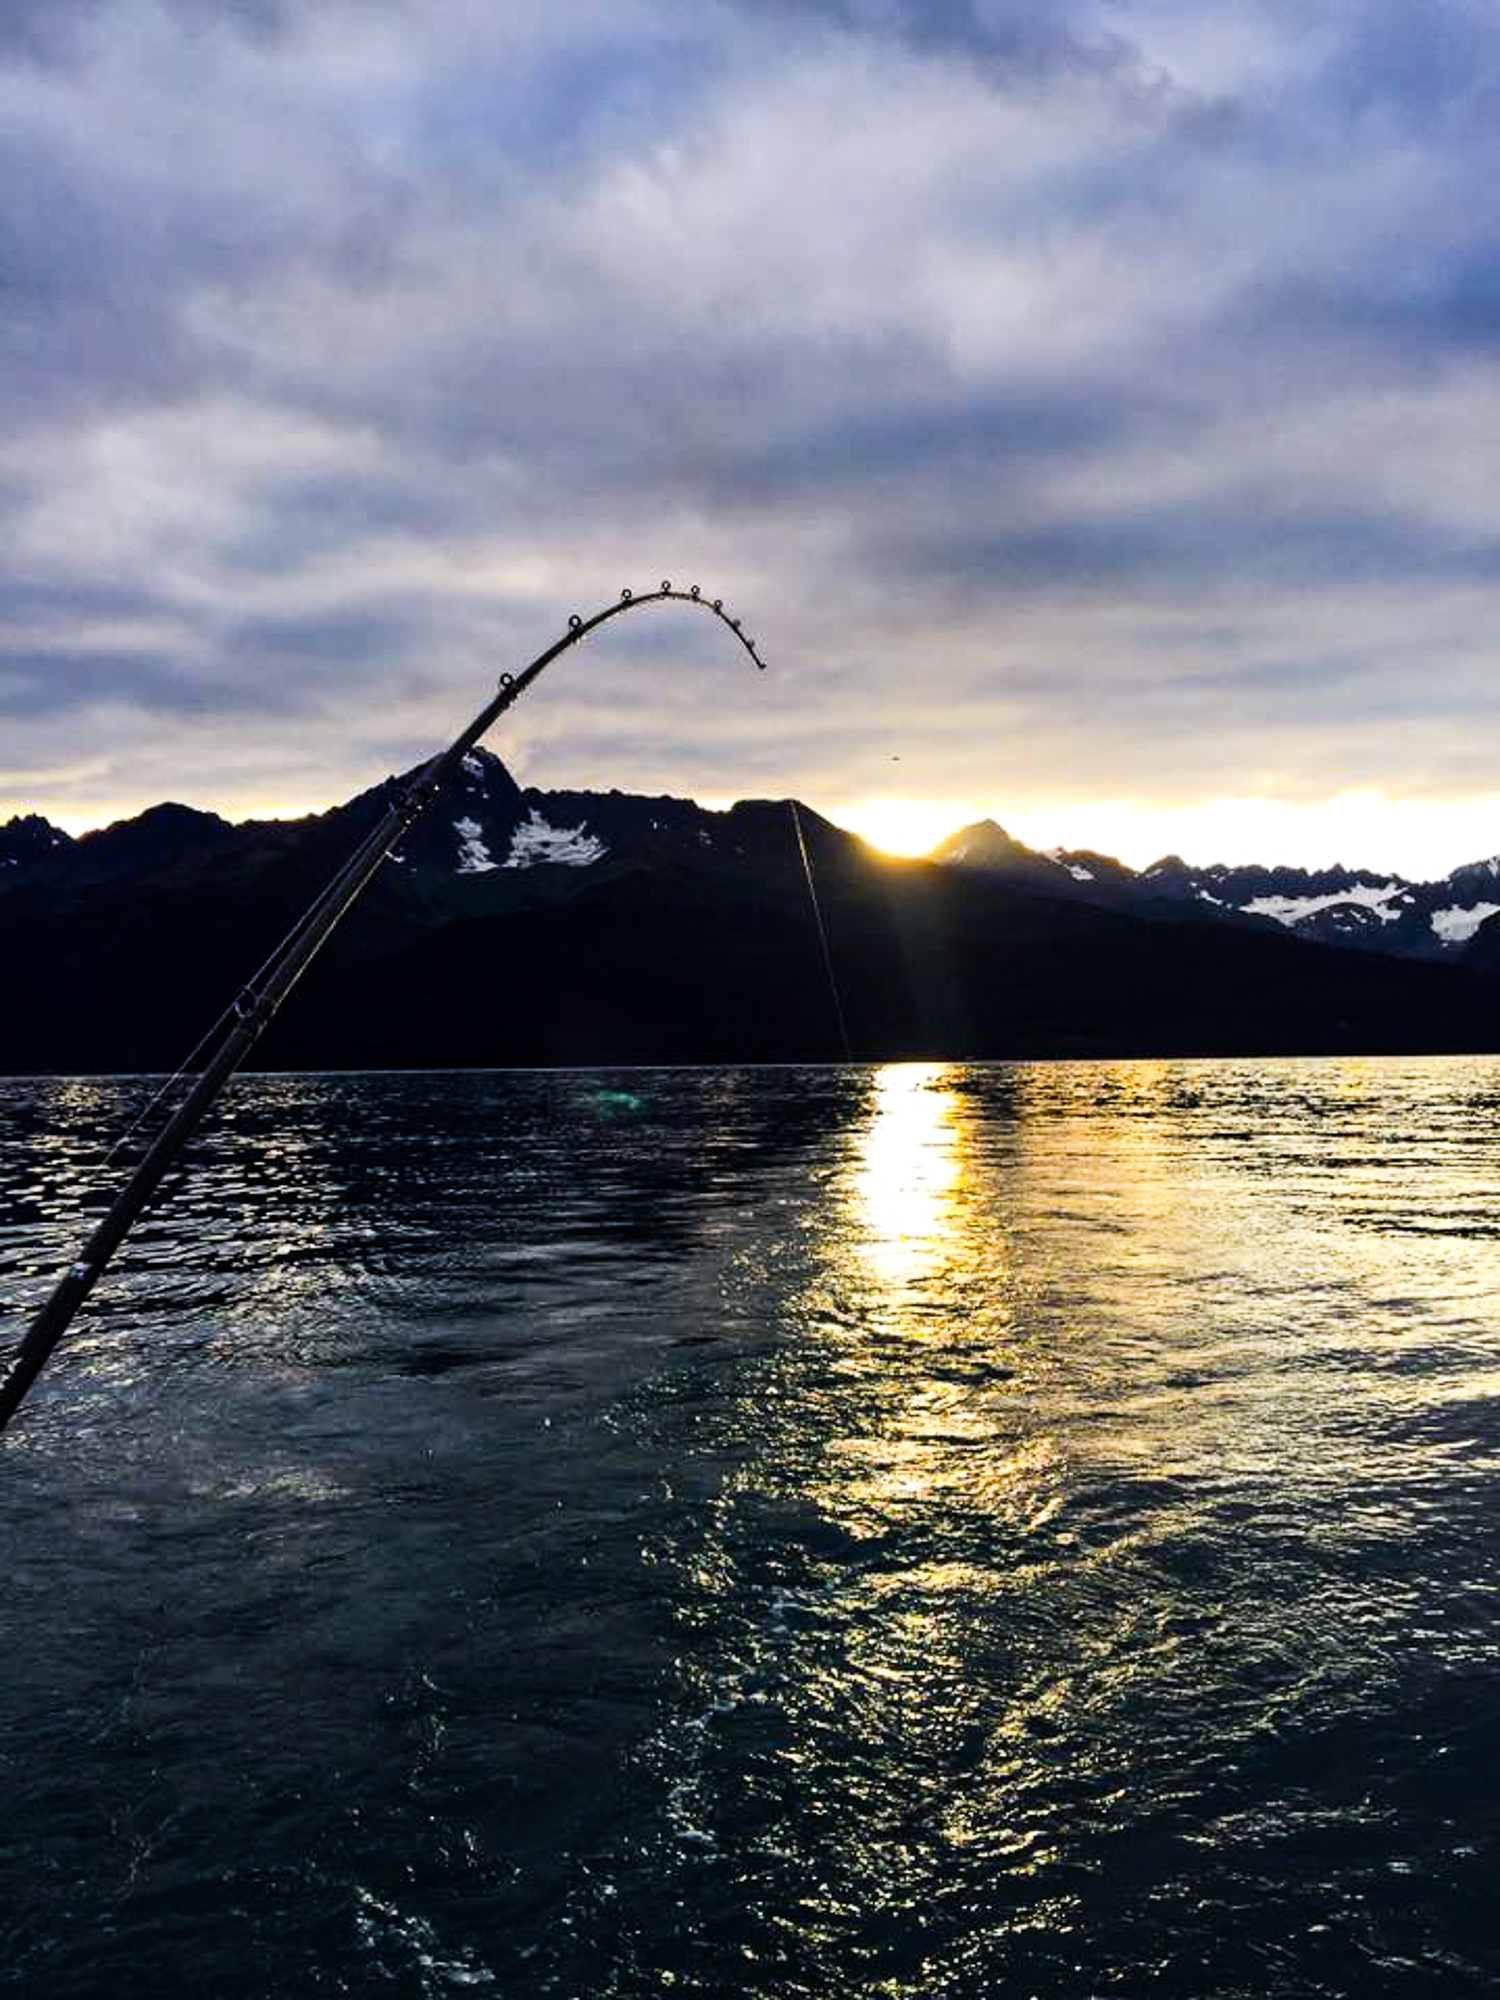 Salmon Fishing in the Bay